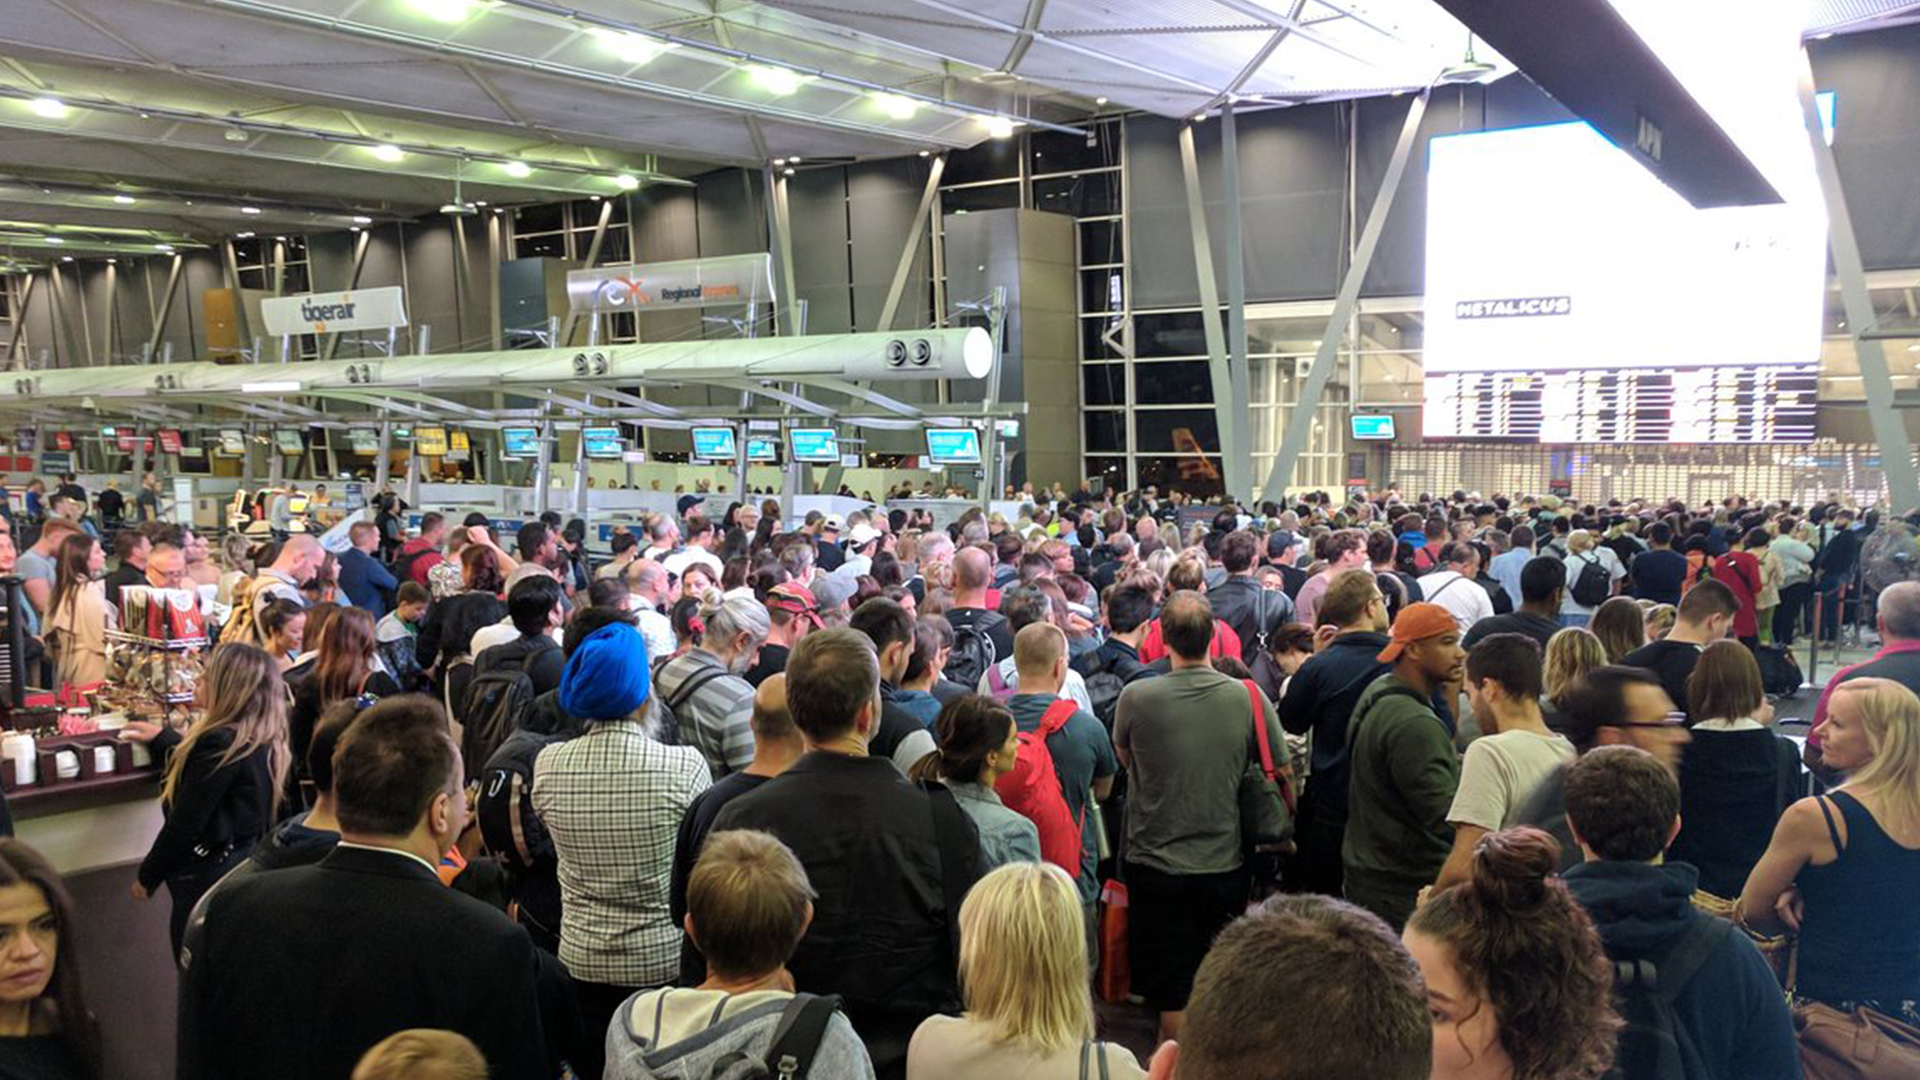 Technical glitch hits Sydney airport, delaying flights